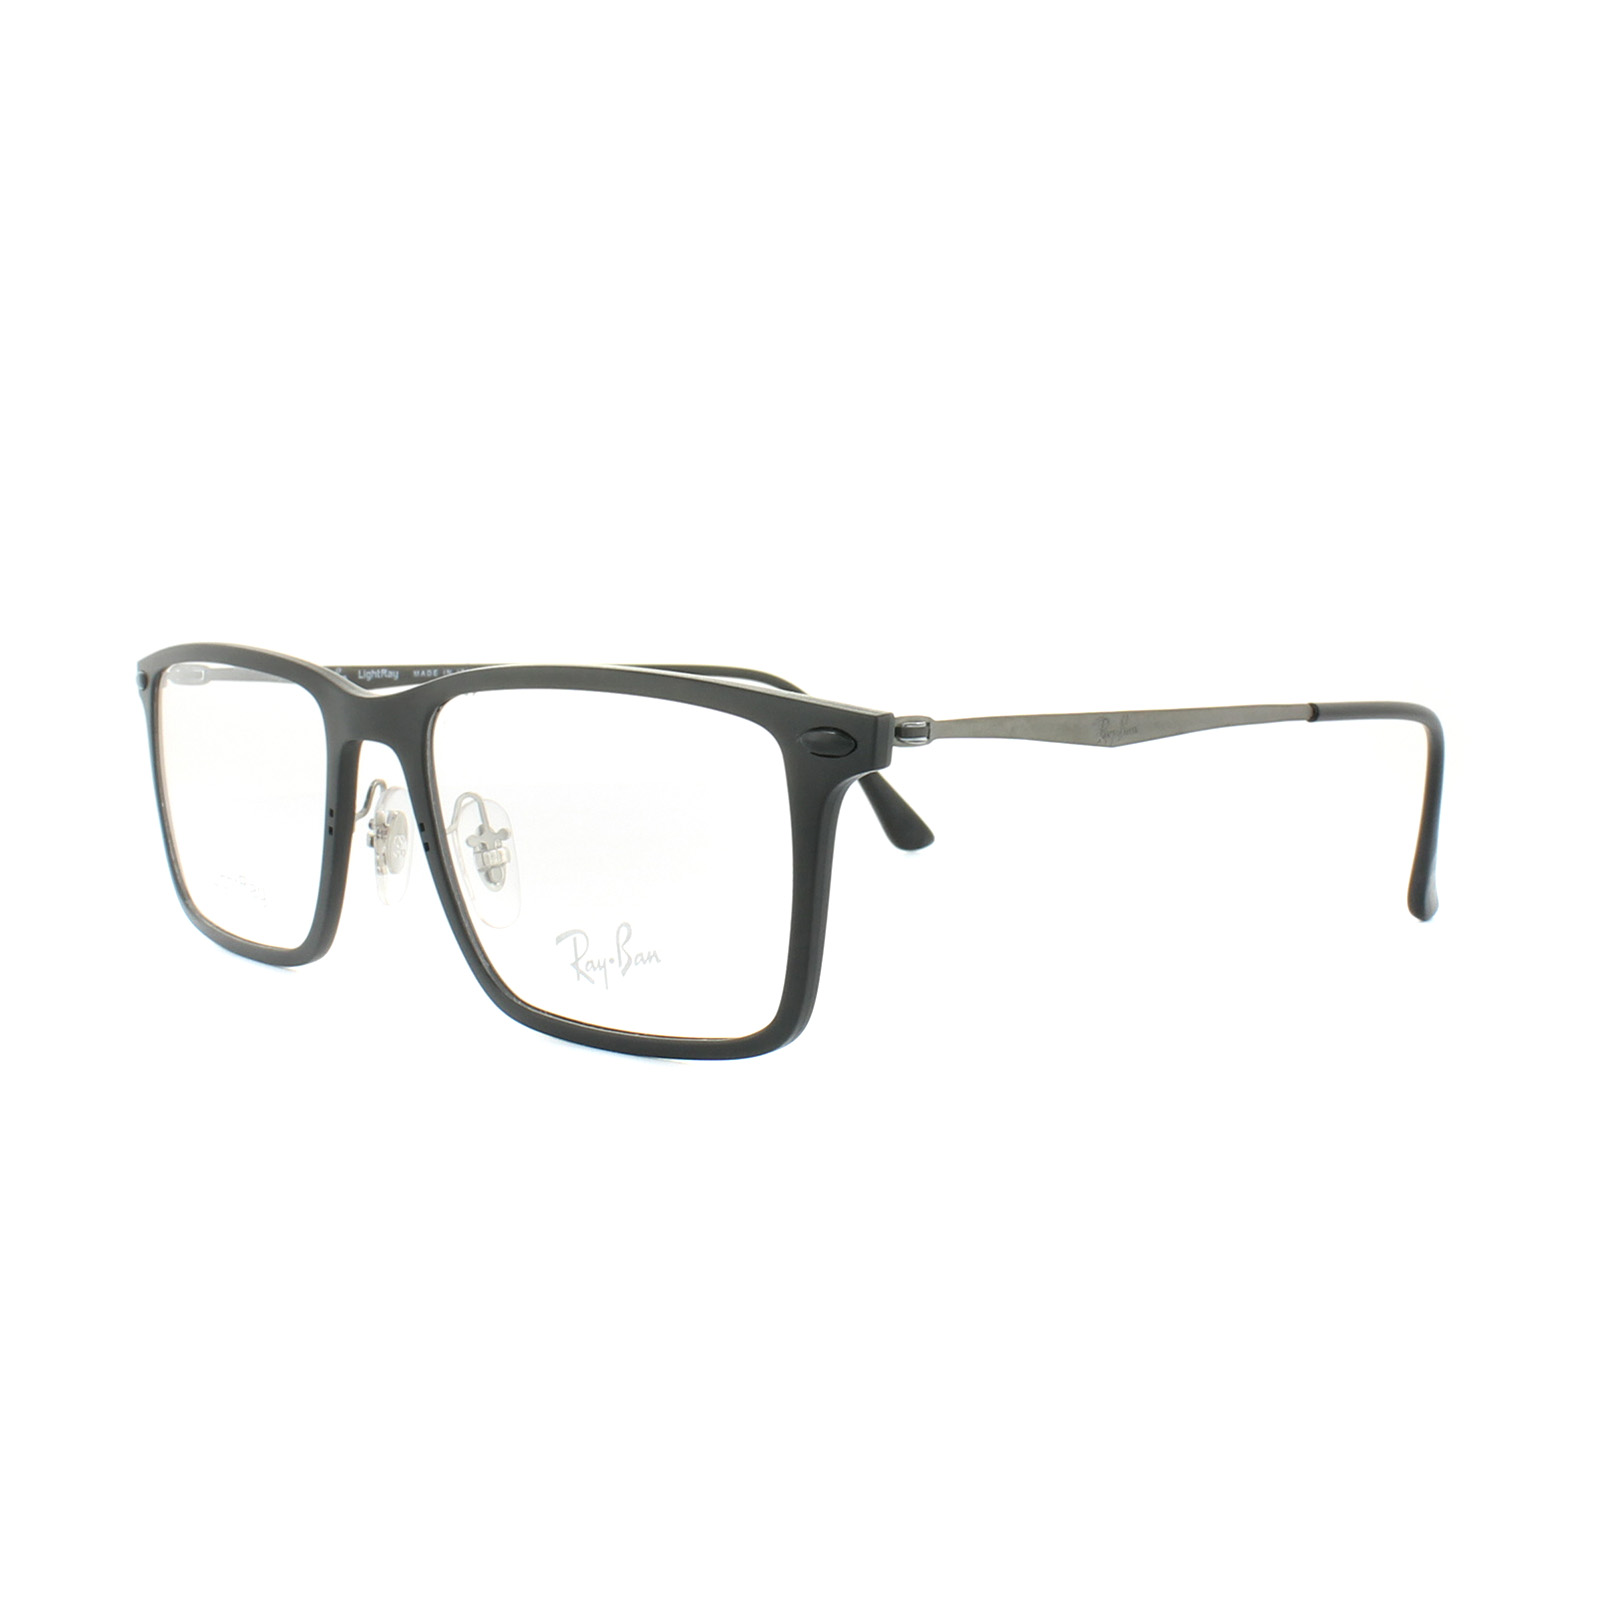 f59b87a47601 ... usa sentinel ray ban glasses frames rx 7050 2077 matt black mens 52mm  455a6 b4899